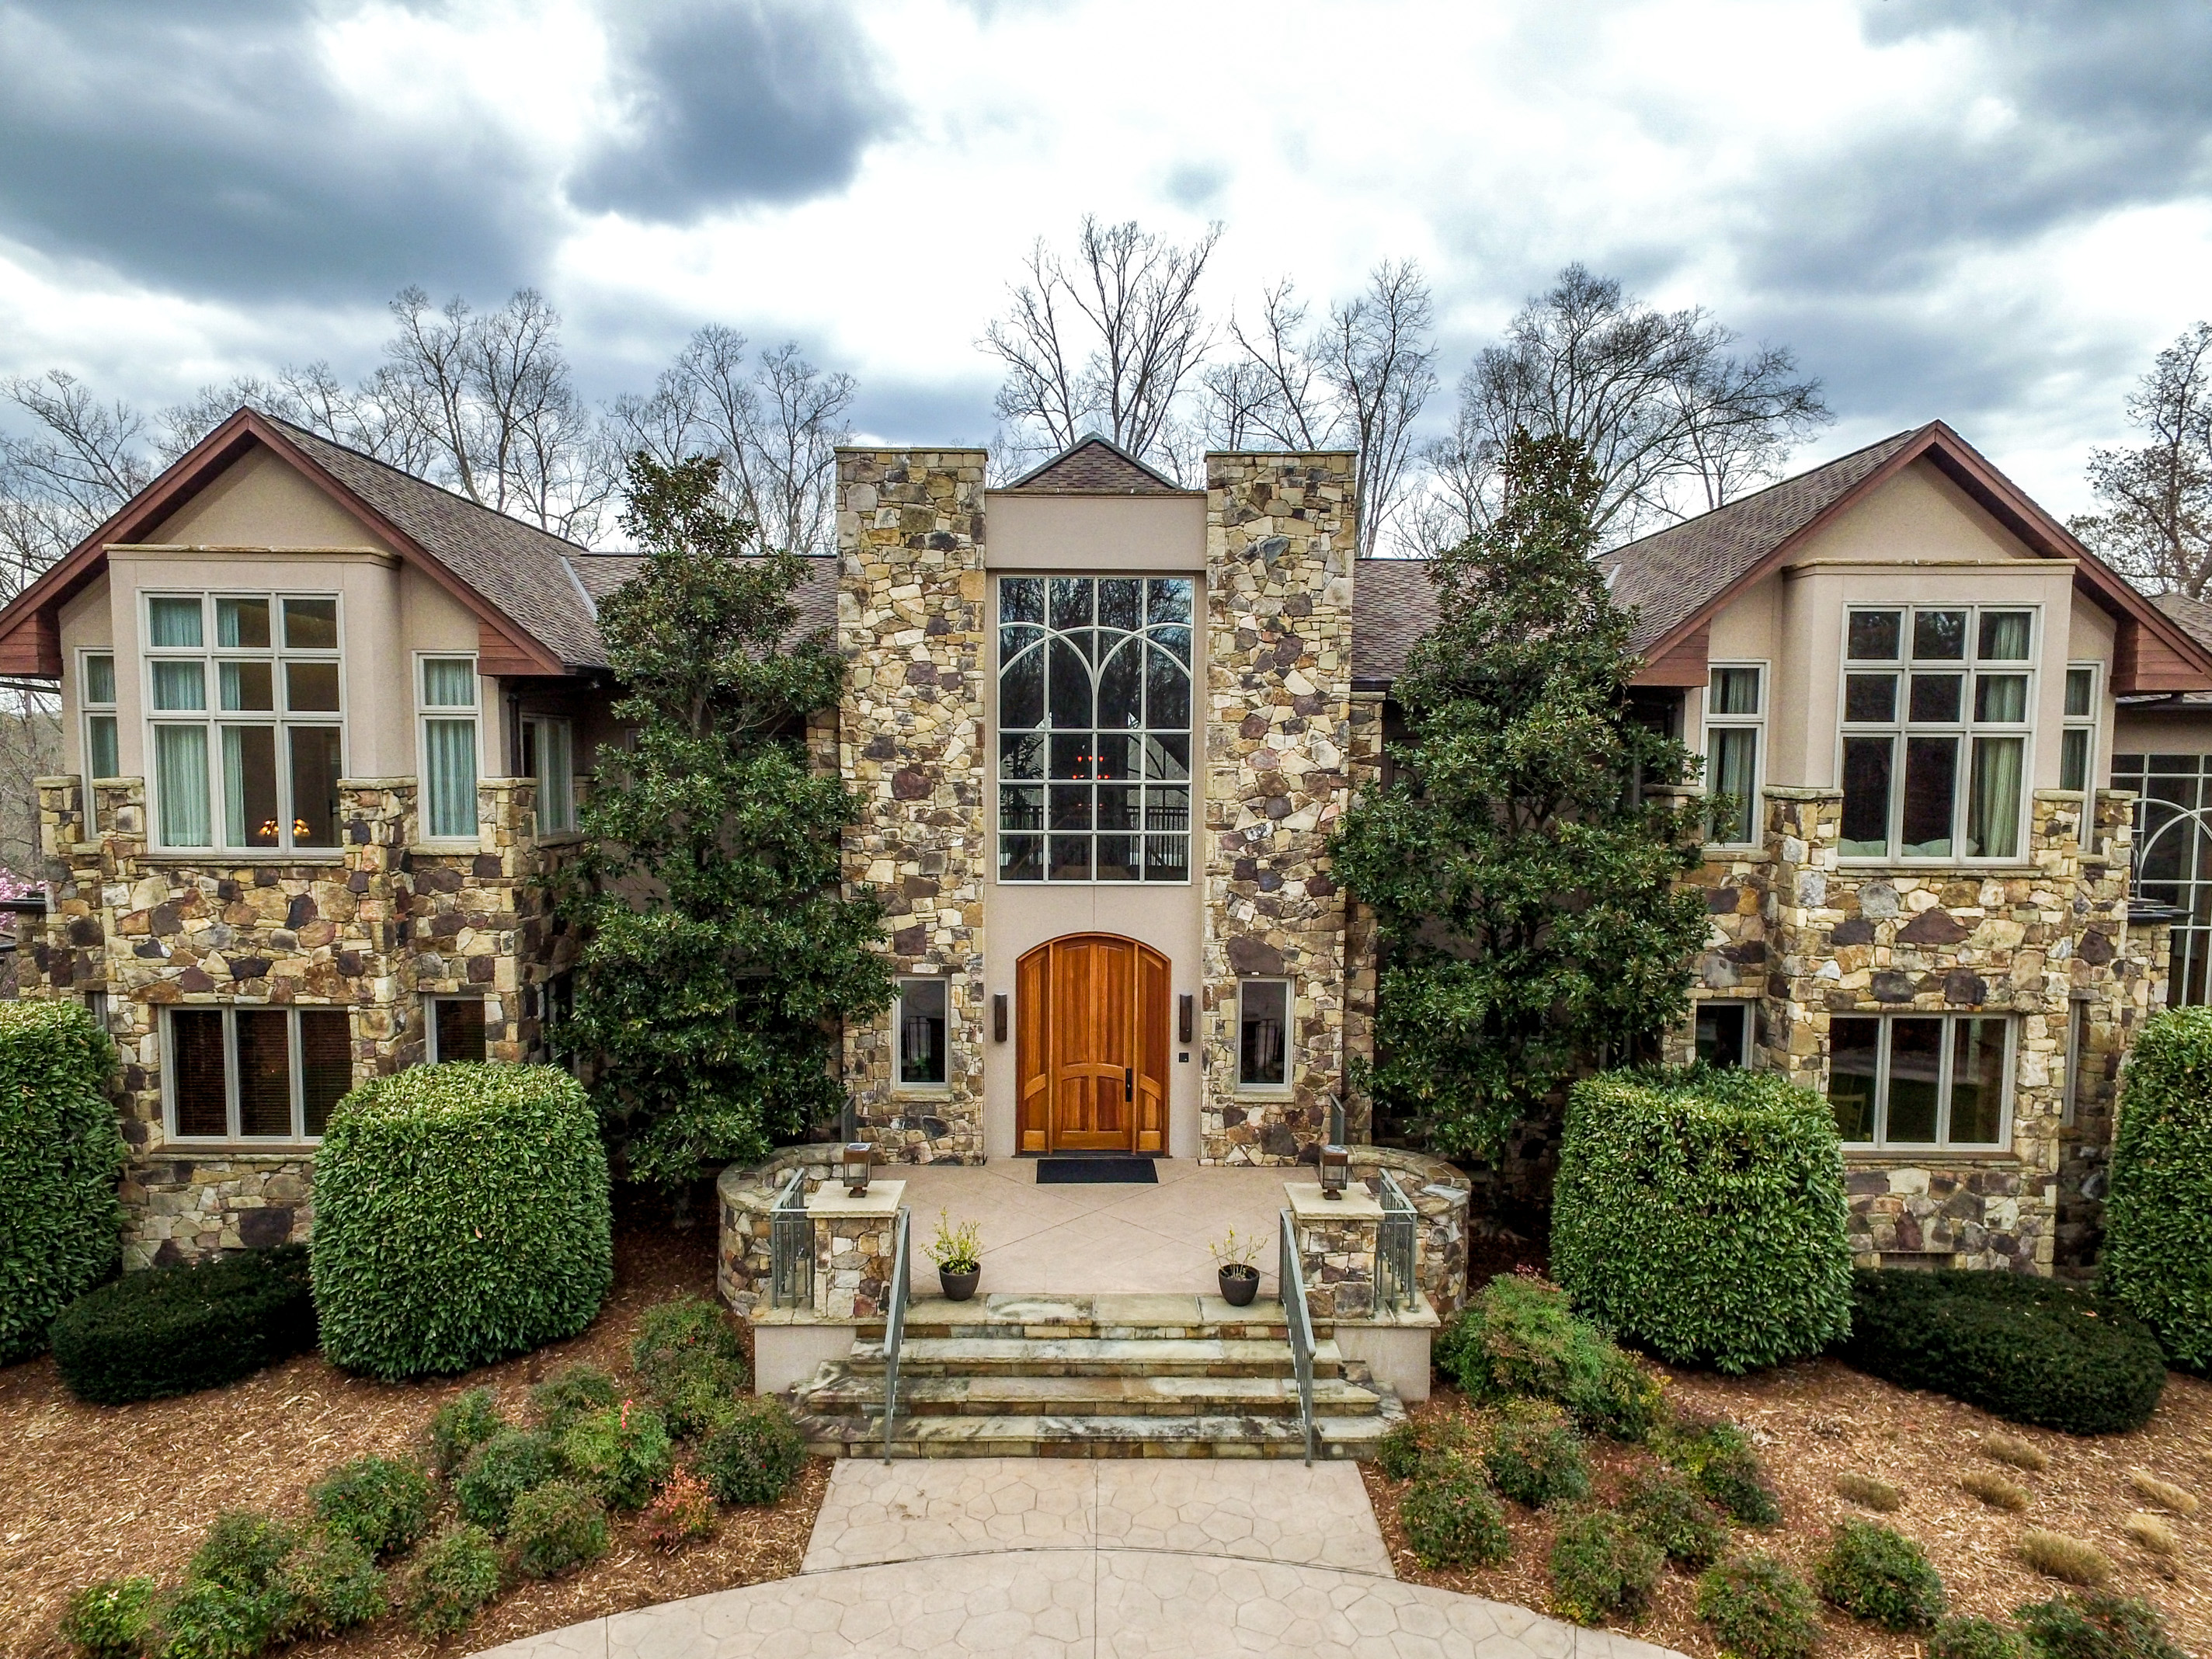 Single Family Home for Sale at Silers Fen 104 Silers Fen Court Chapel Hill, North Carolina, 27517 United StatesIn/Around: Cary, Durham, Raleigh